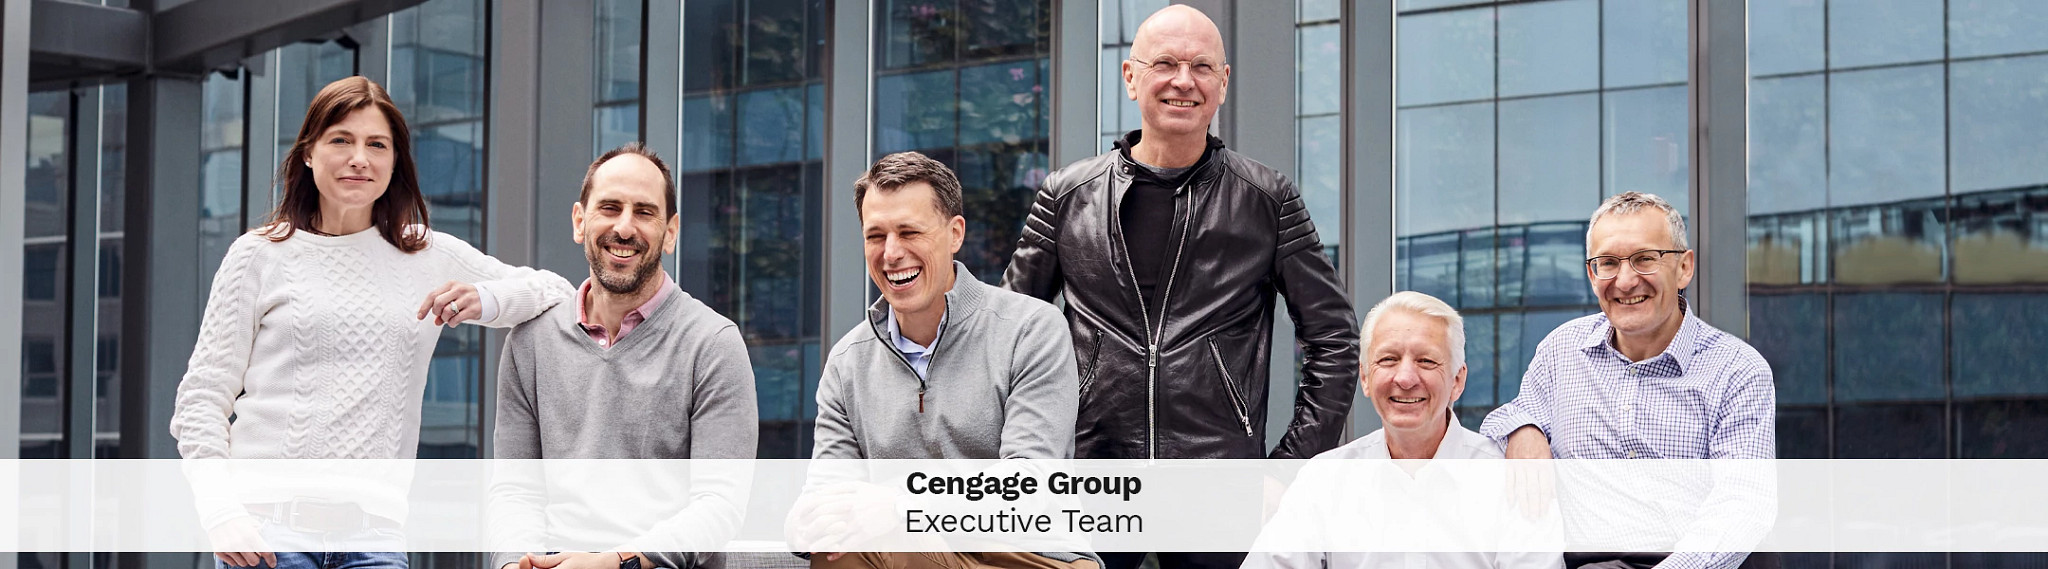 Cengage leadership team poses outdoors together for a photo on the investors page